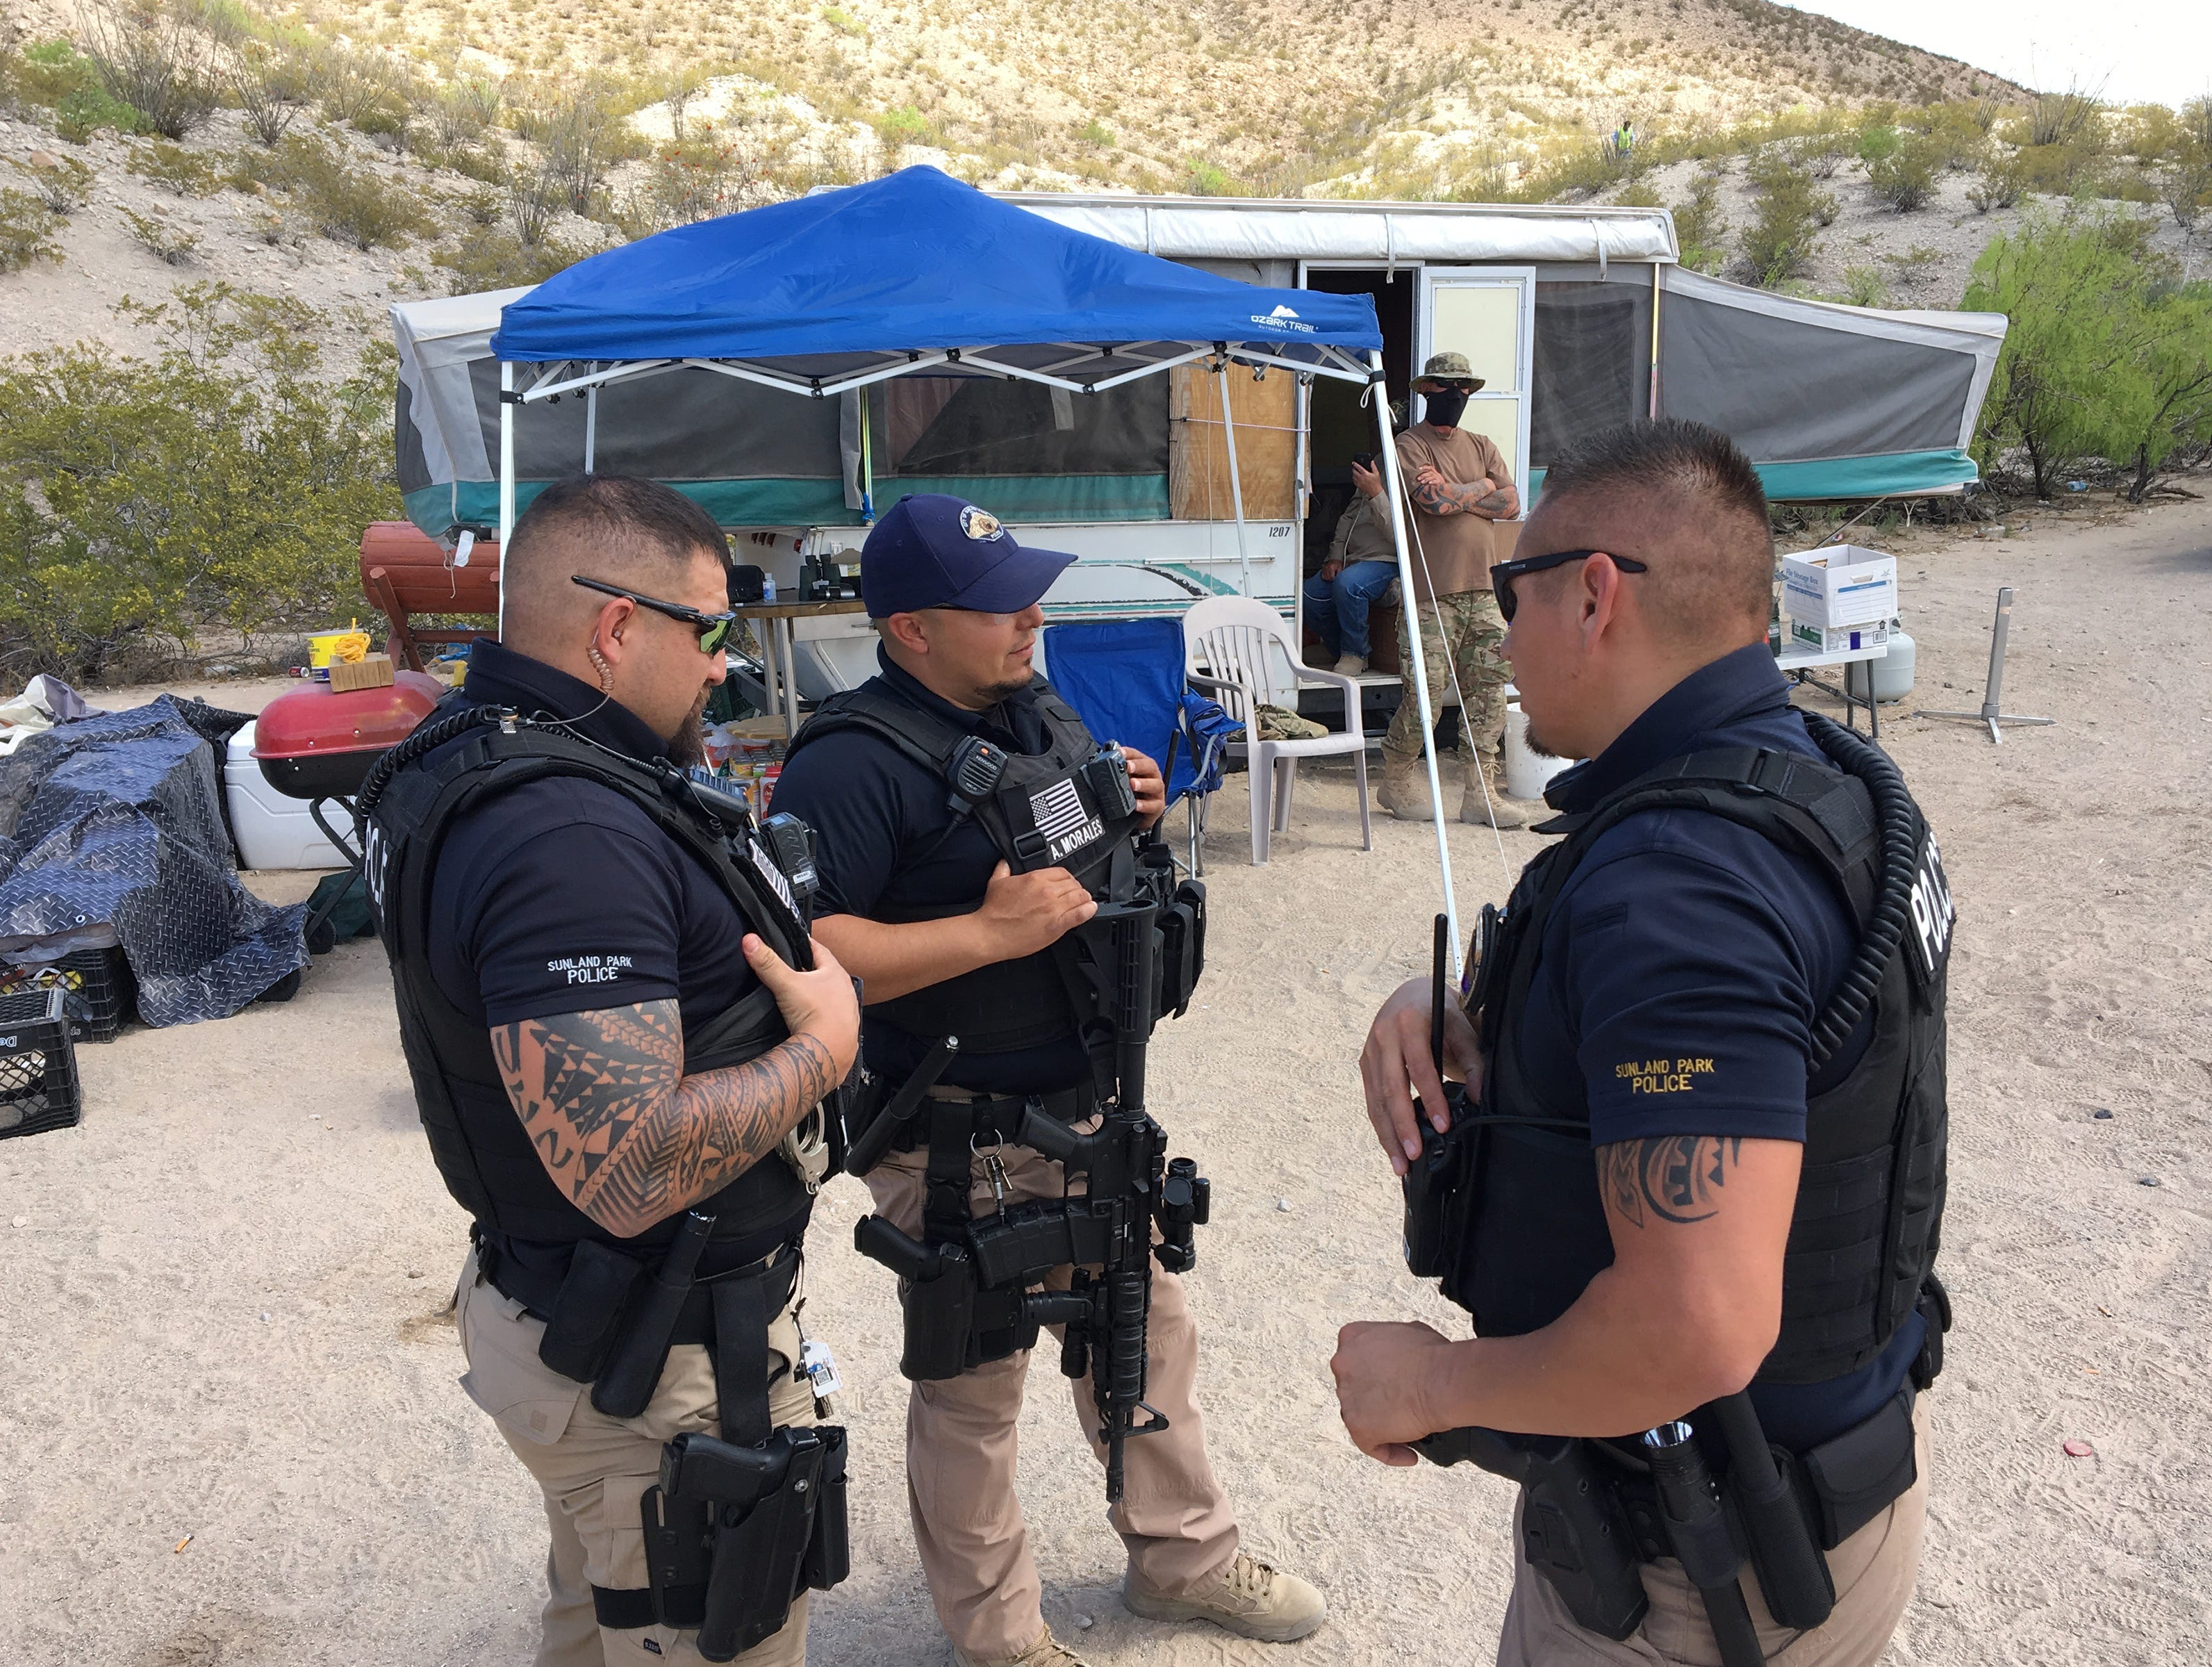 The United Constitutional Patriots-New Mexico Border Ops group were visited by law enforcement Monday as they erected 'No Trespassing' signs denoting the city of Sunland Park's boundary near their camp. Union Pacific Police said they are camped on railroad land and will need to vacate by Friday.